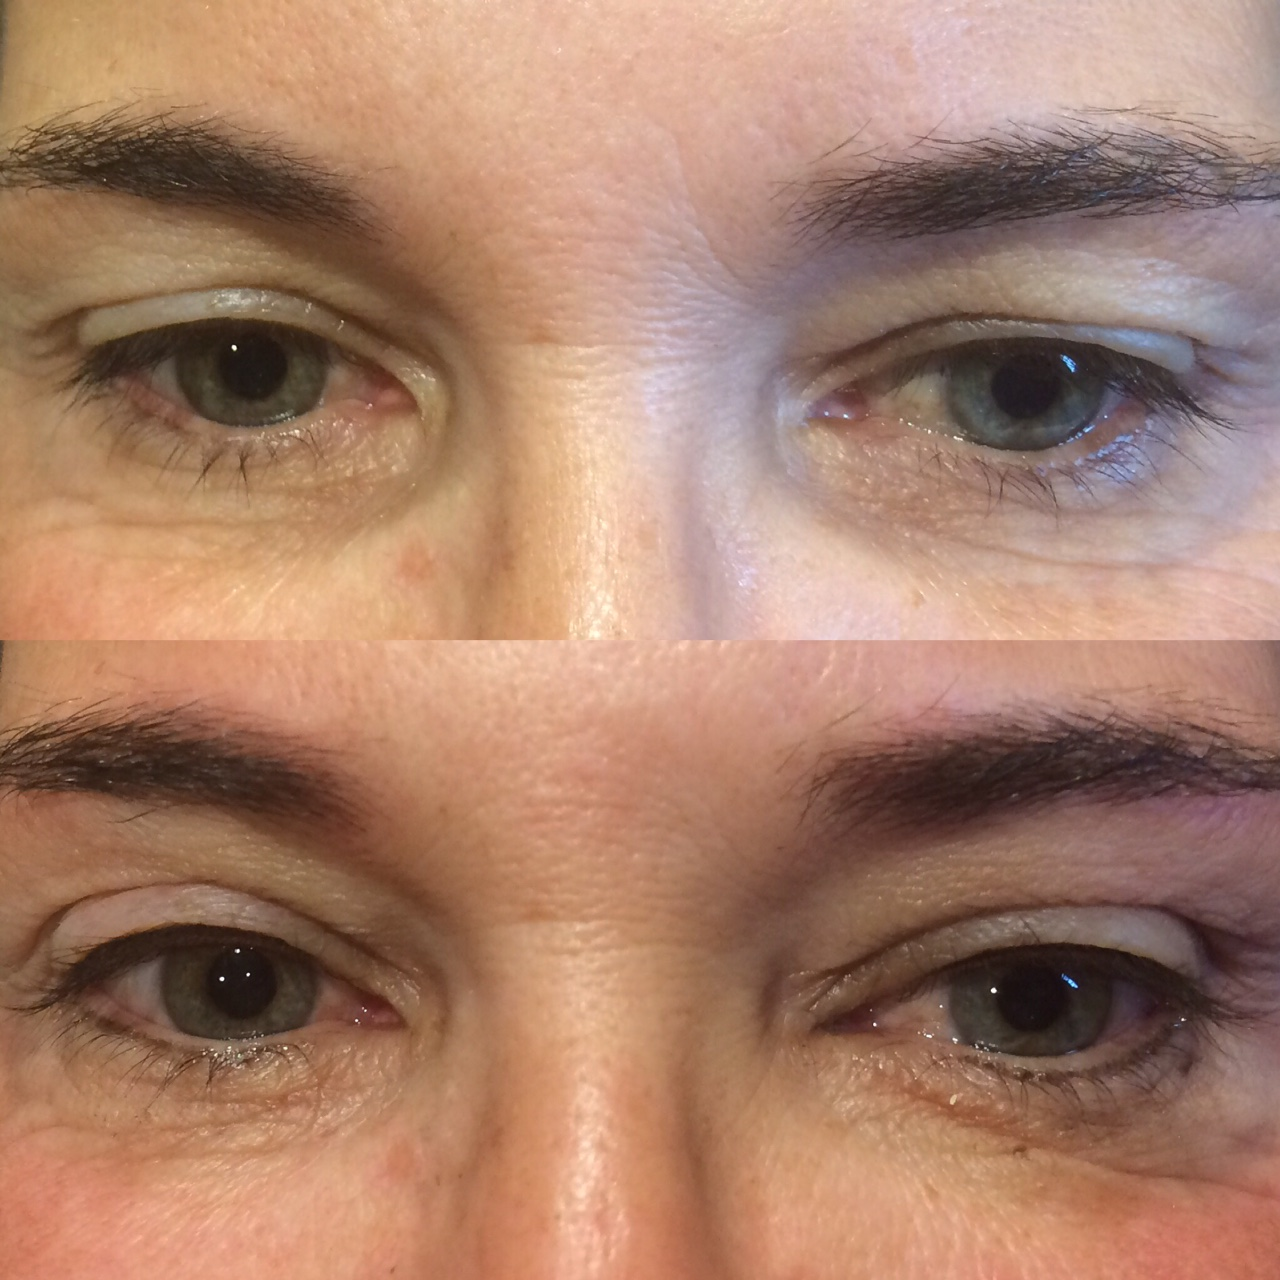 This client is very low maintenance, which is a great example of why permanent makeup can be so awesome! Now she will be able to wake up with just a little added oompf and no extra time in front of the mirror! BOOM.